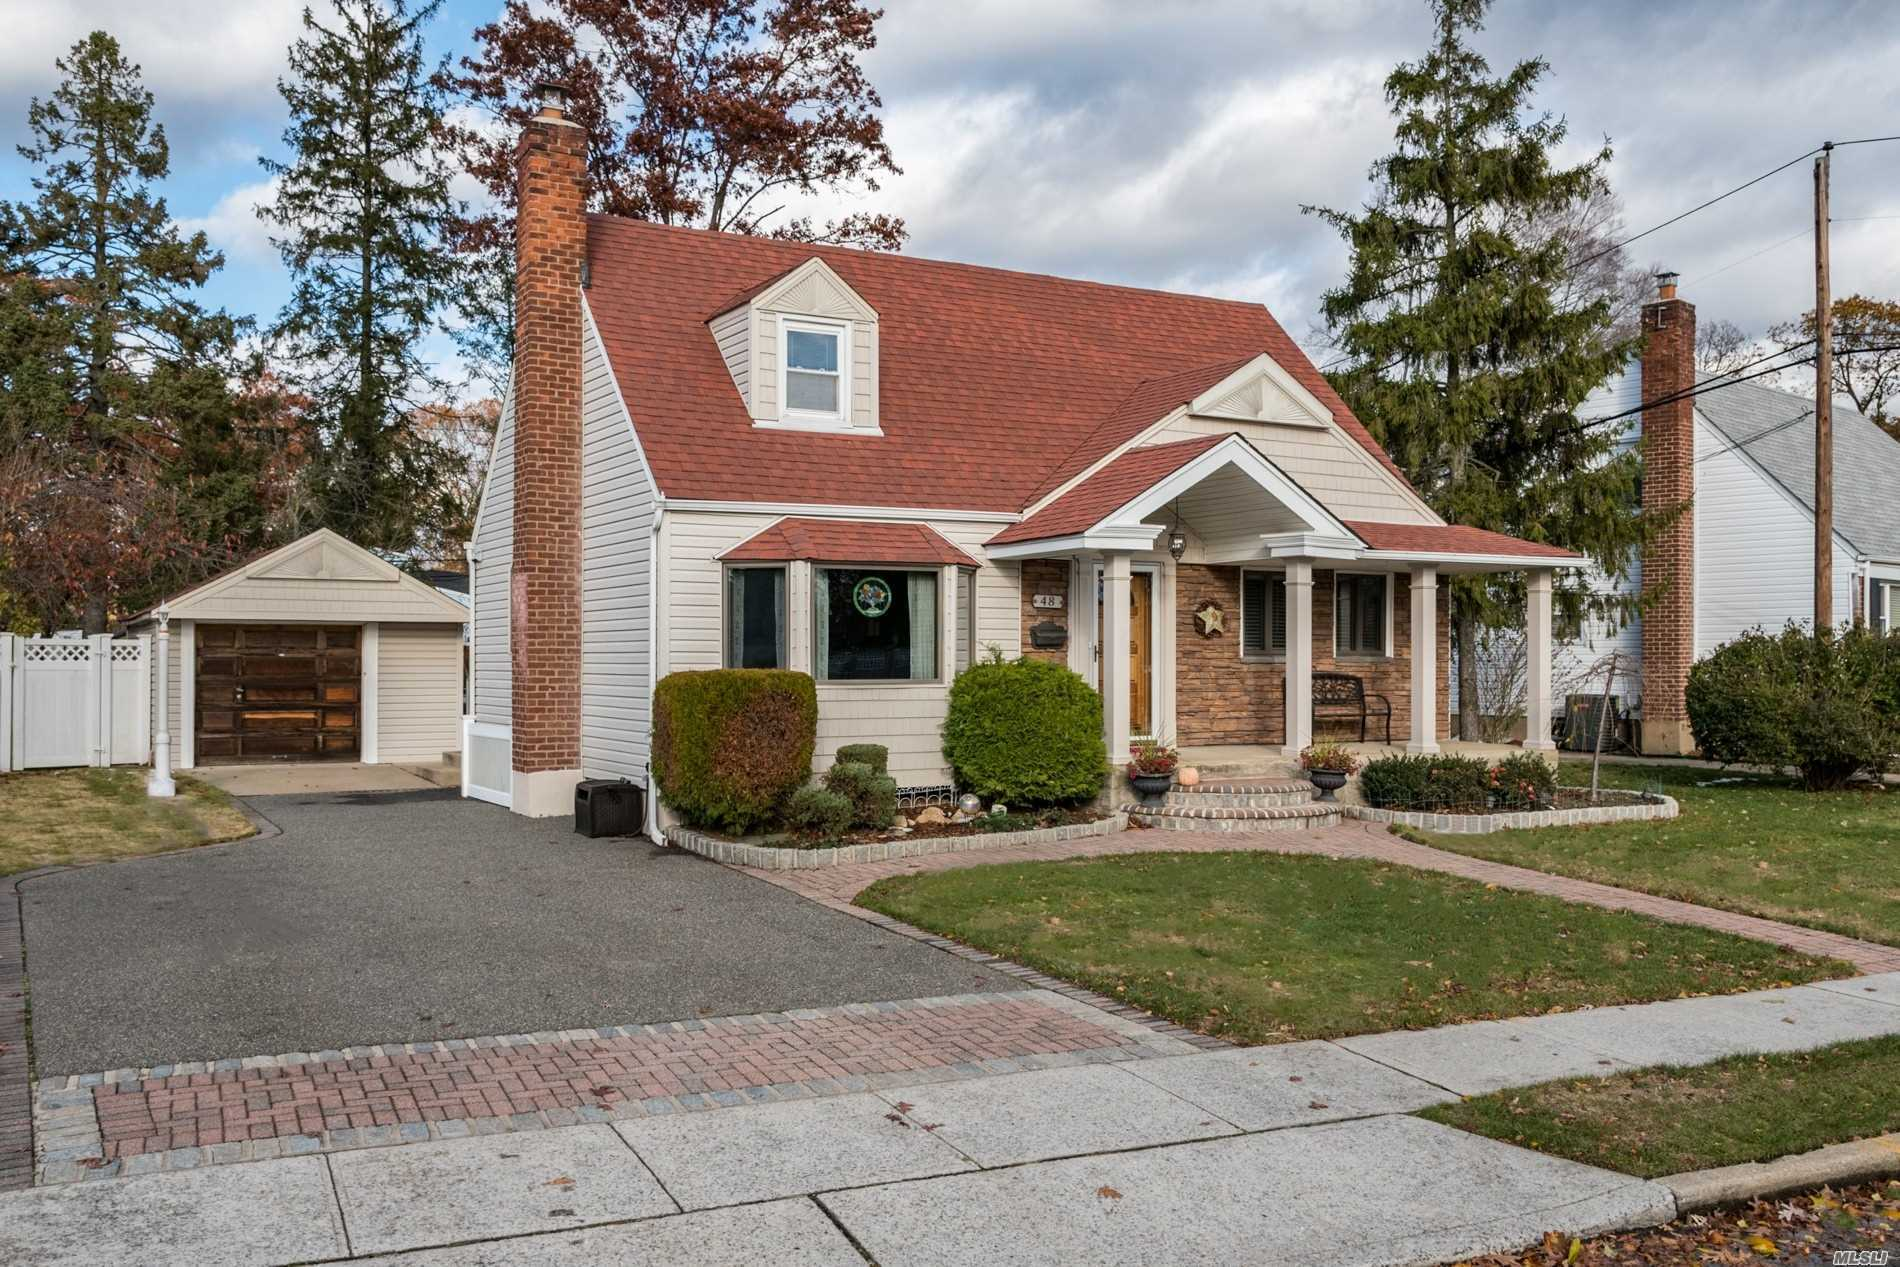 Expanded 4 Bedroom 2 Bath Cape Located In Desirable N. Merrick - Updated Granite Kitchen Opens Up To Dining And Family Room - Sliders Out To Deck And Beautiful O/S Property - Hw Floors, 2 Slim Line Ac's - Paved Walkway, Front Porch, Roof Approx. 8 Years